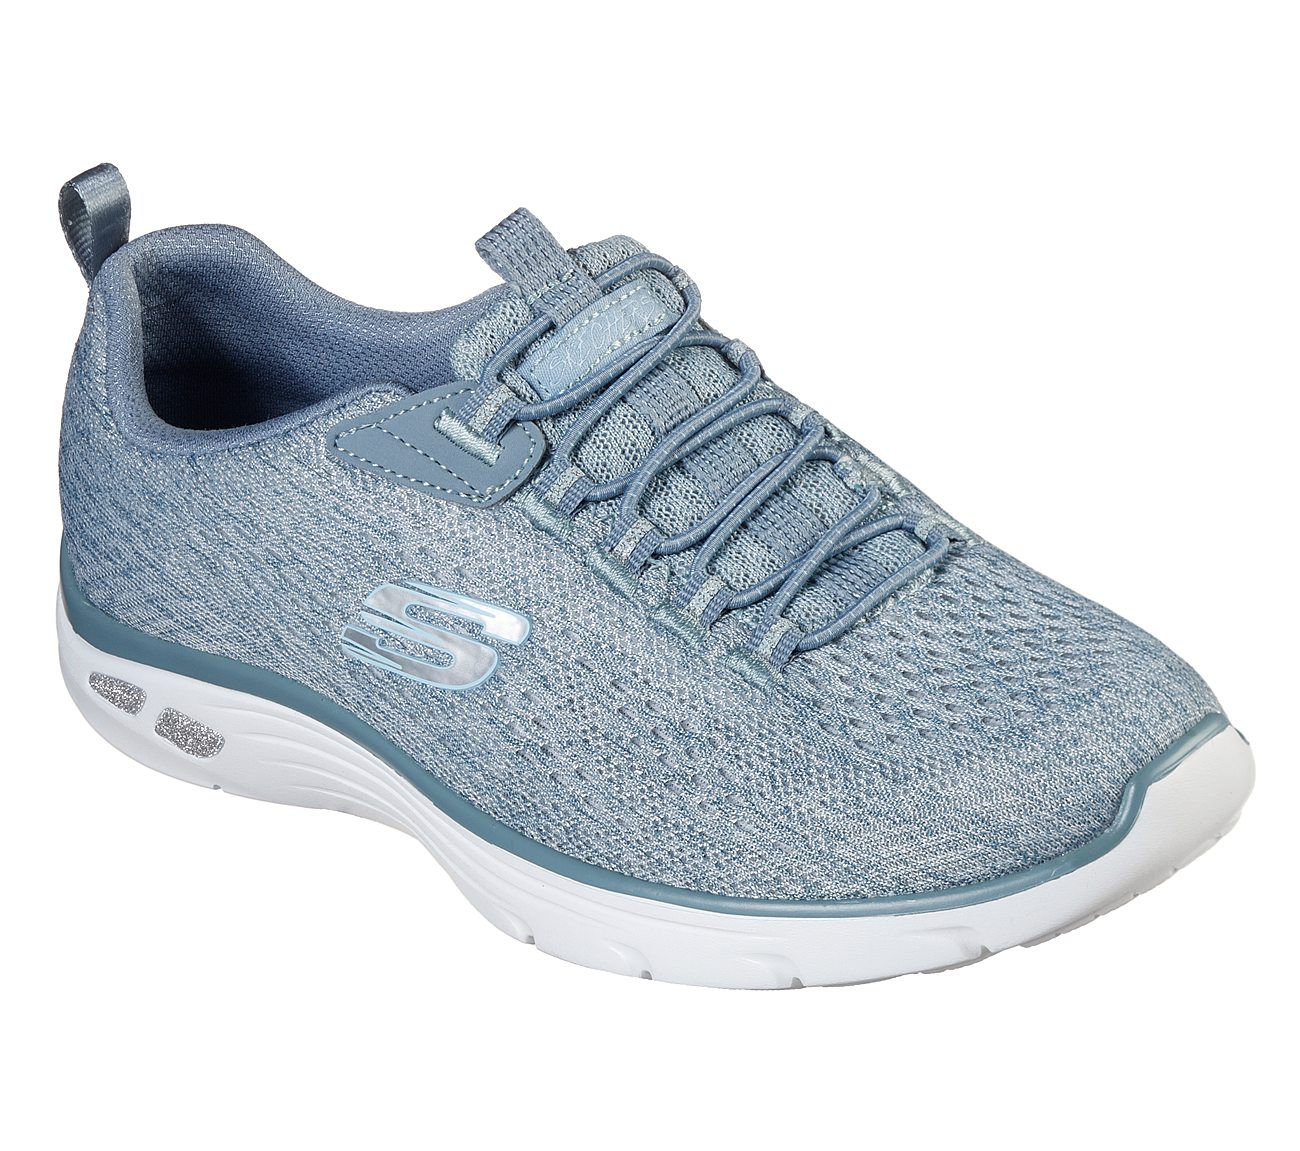 skechers relaxed fit blue